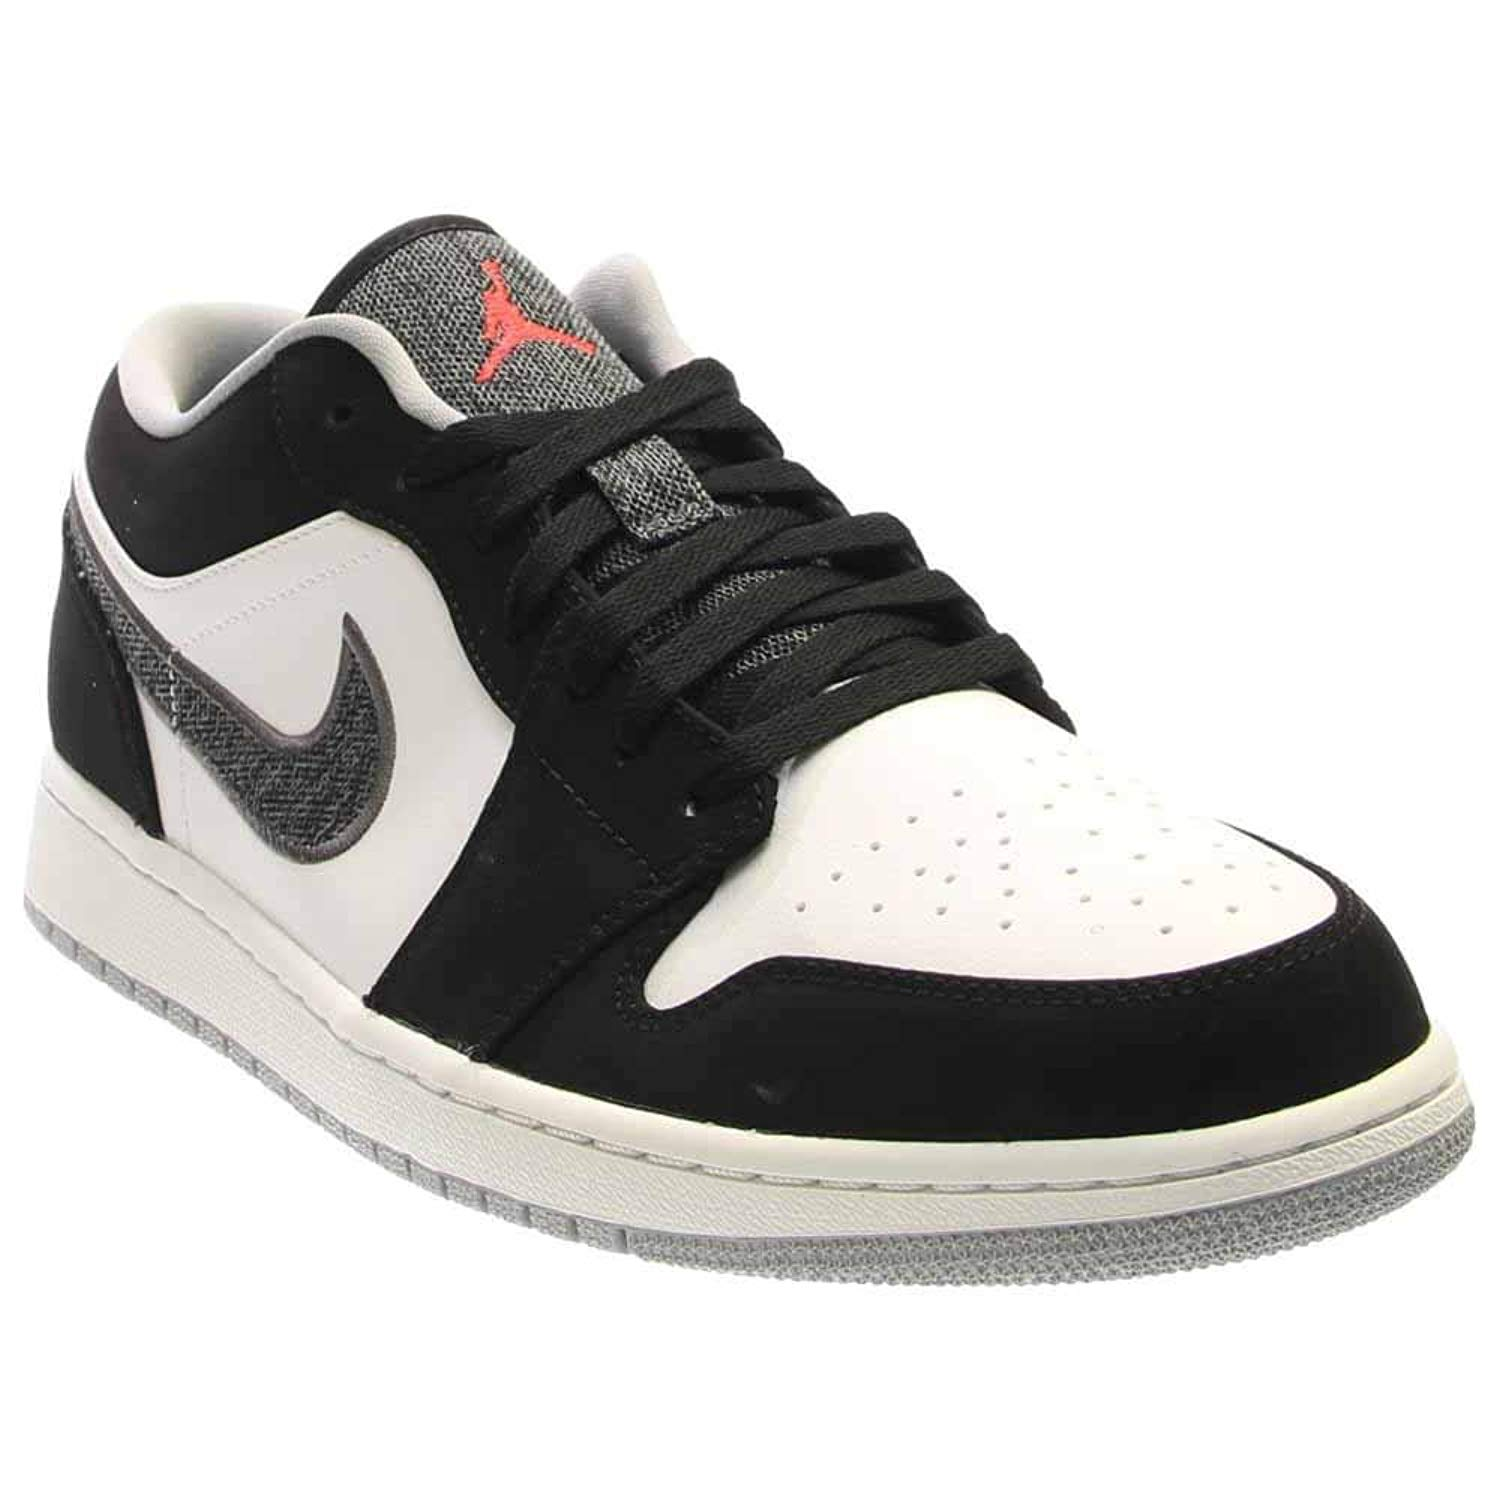 06d37bd717f5fb Get Quotations · Jordan 1 Low Black White Wolf Grey Infrared 23 553558-029  12